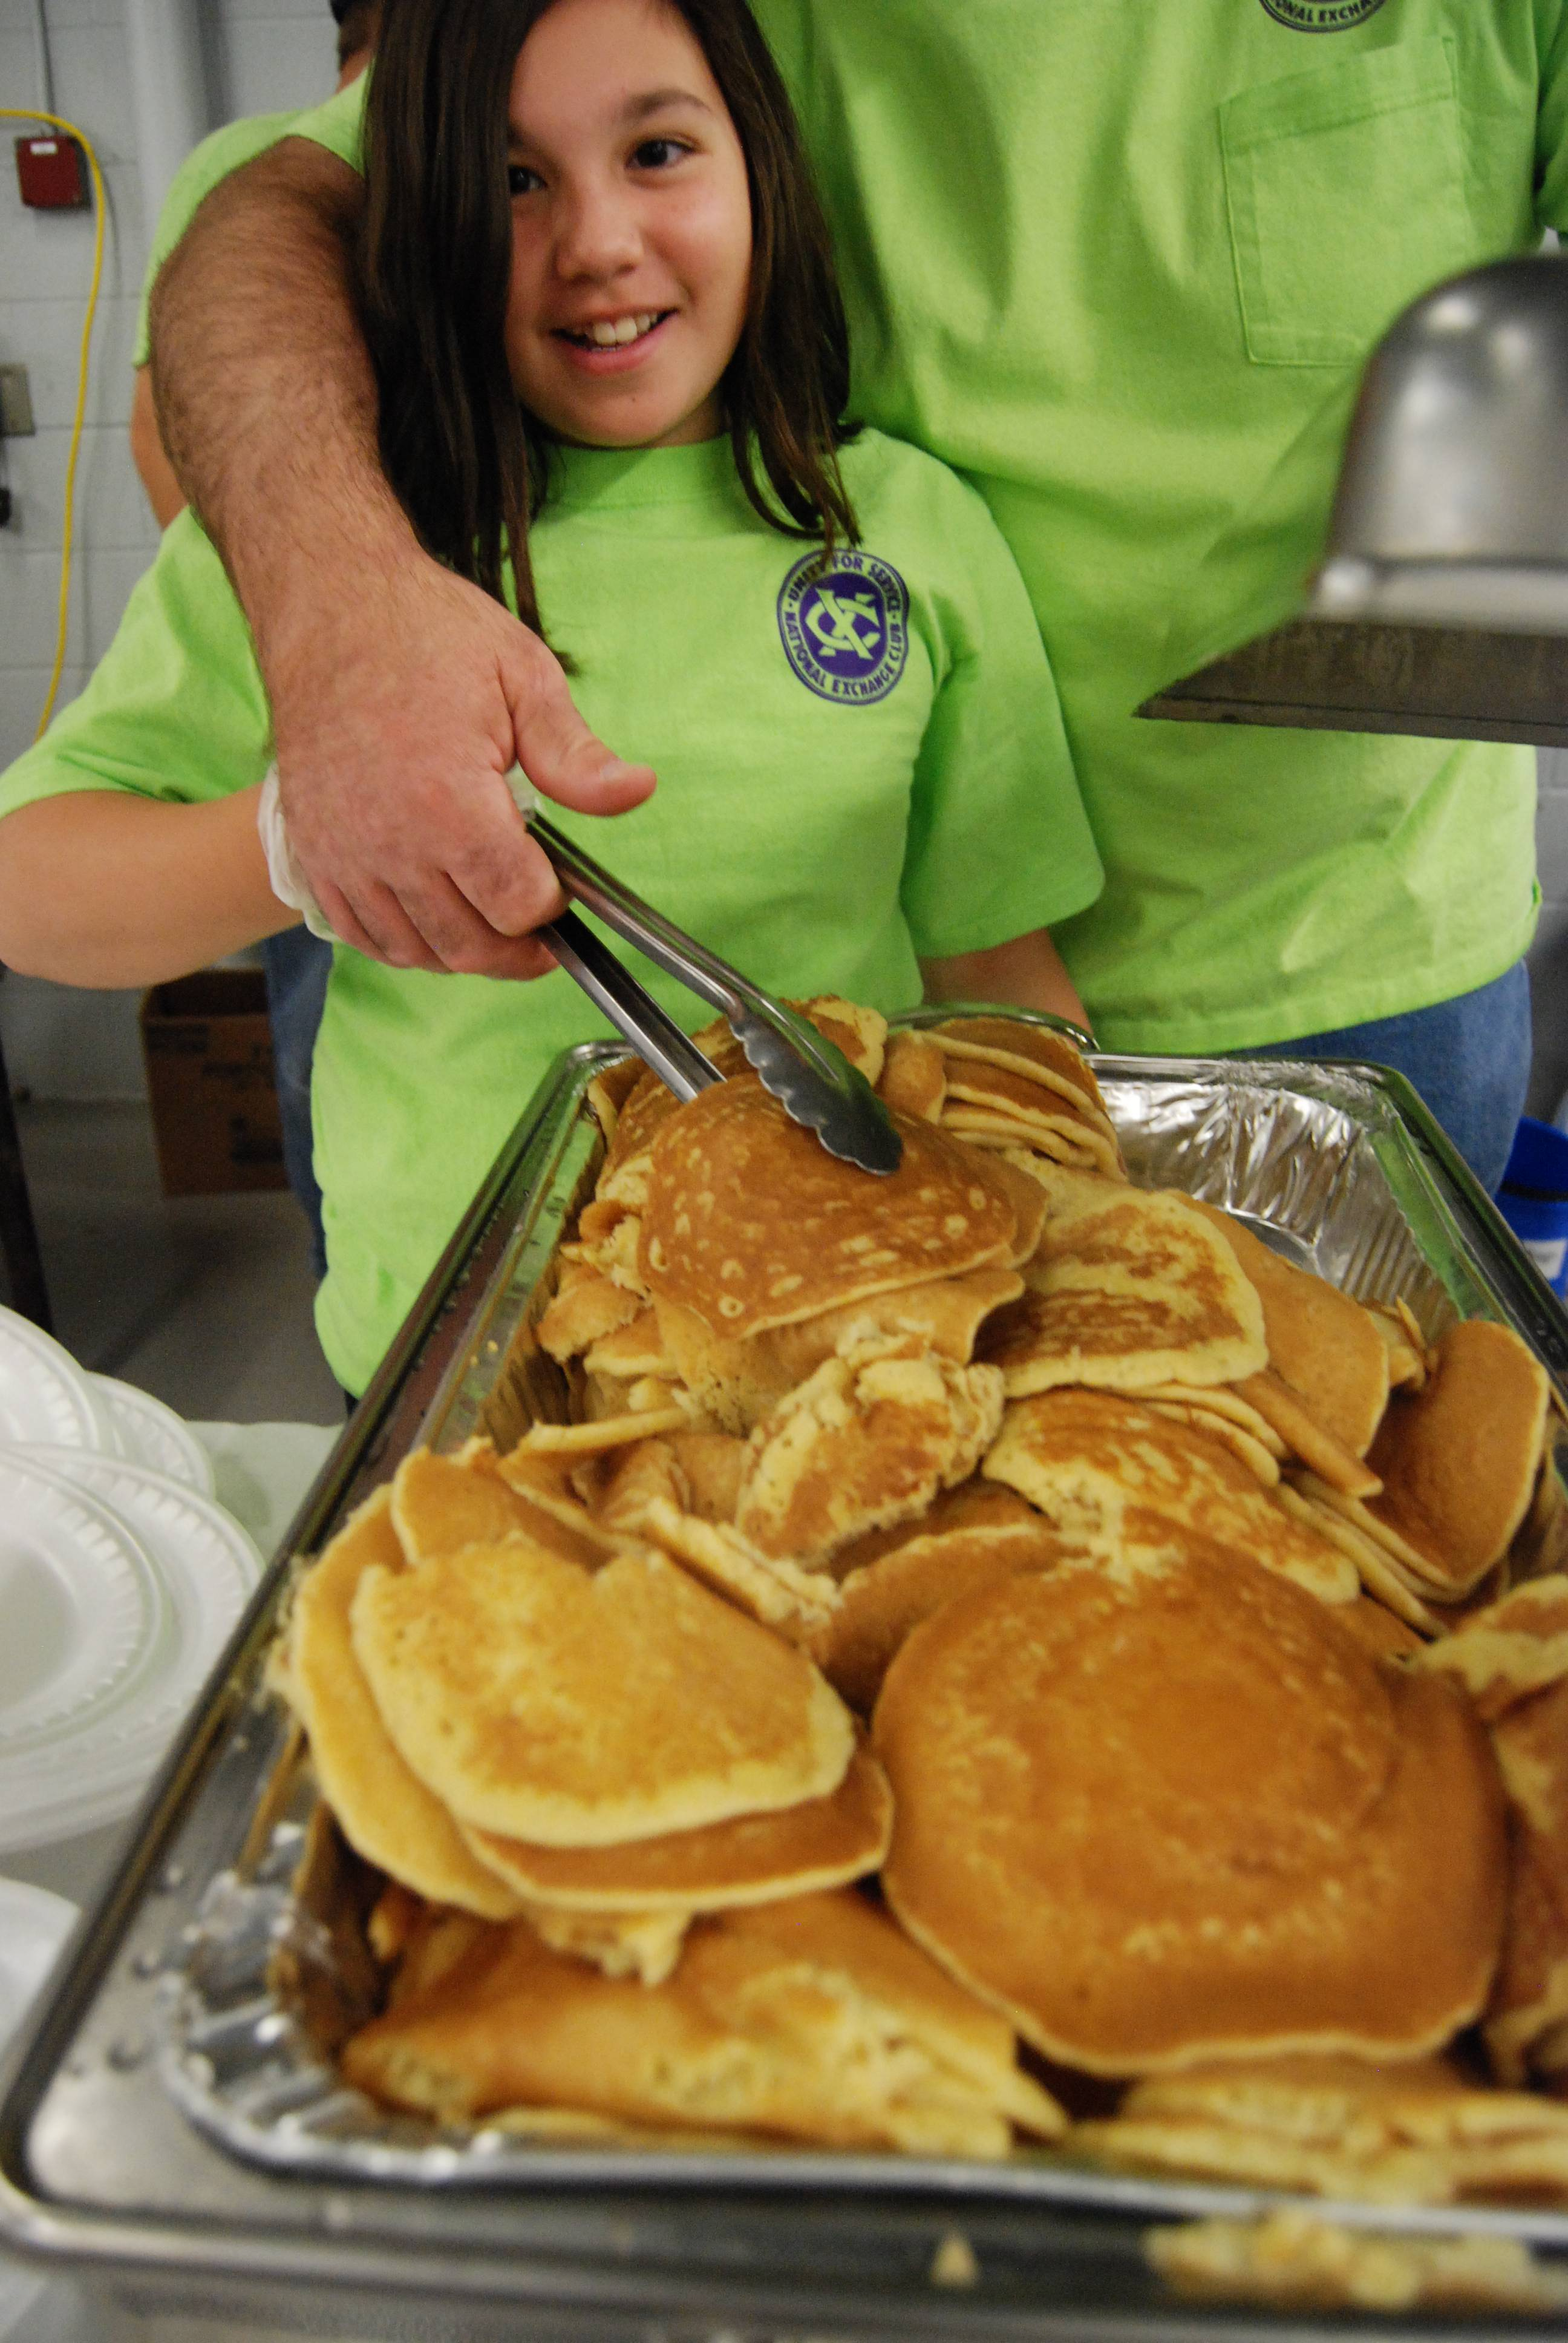 Everyone pitches in to help serve the best pancakes in Lake County